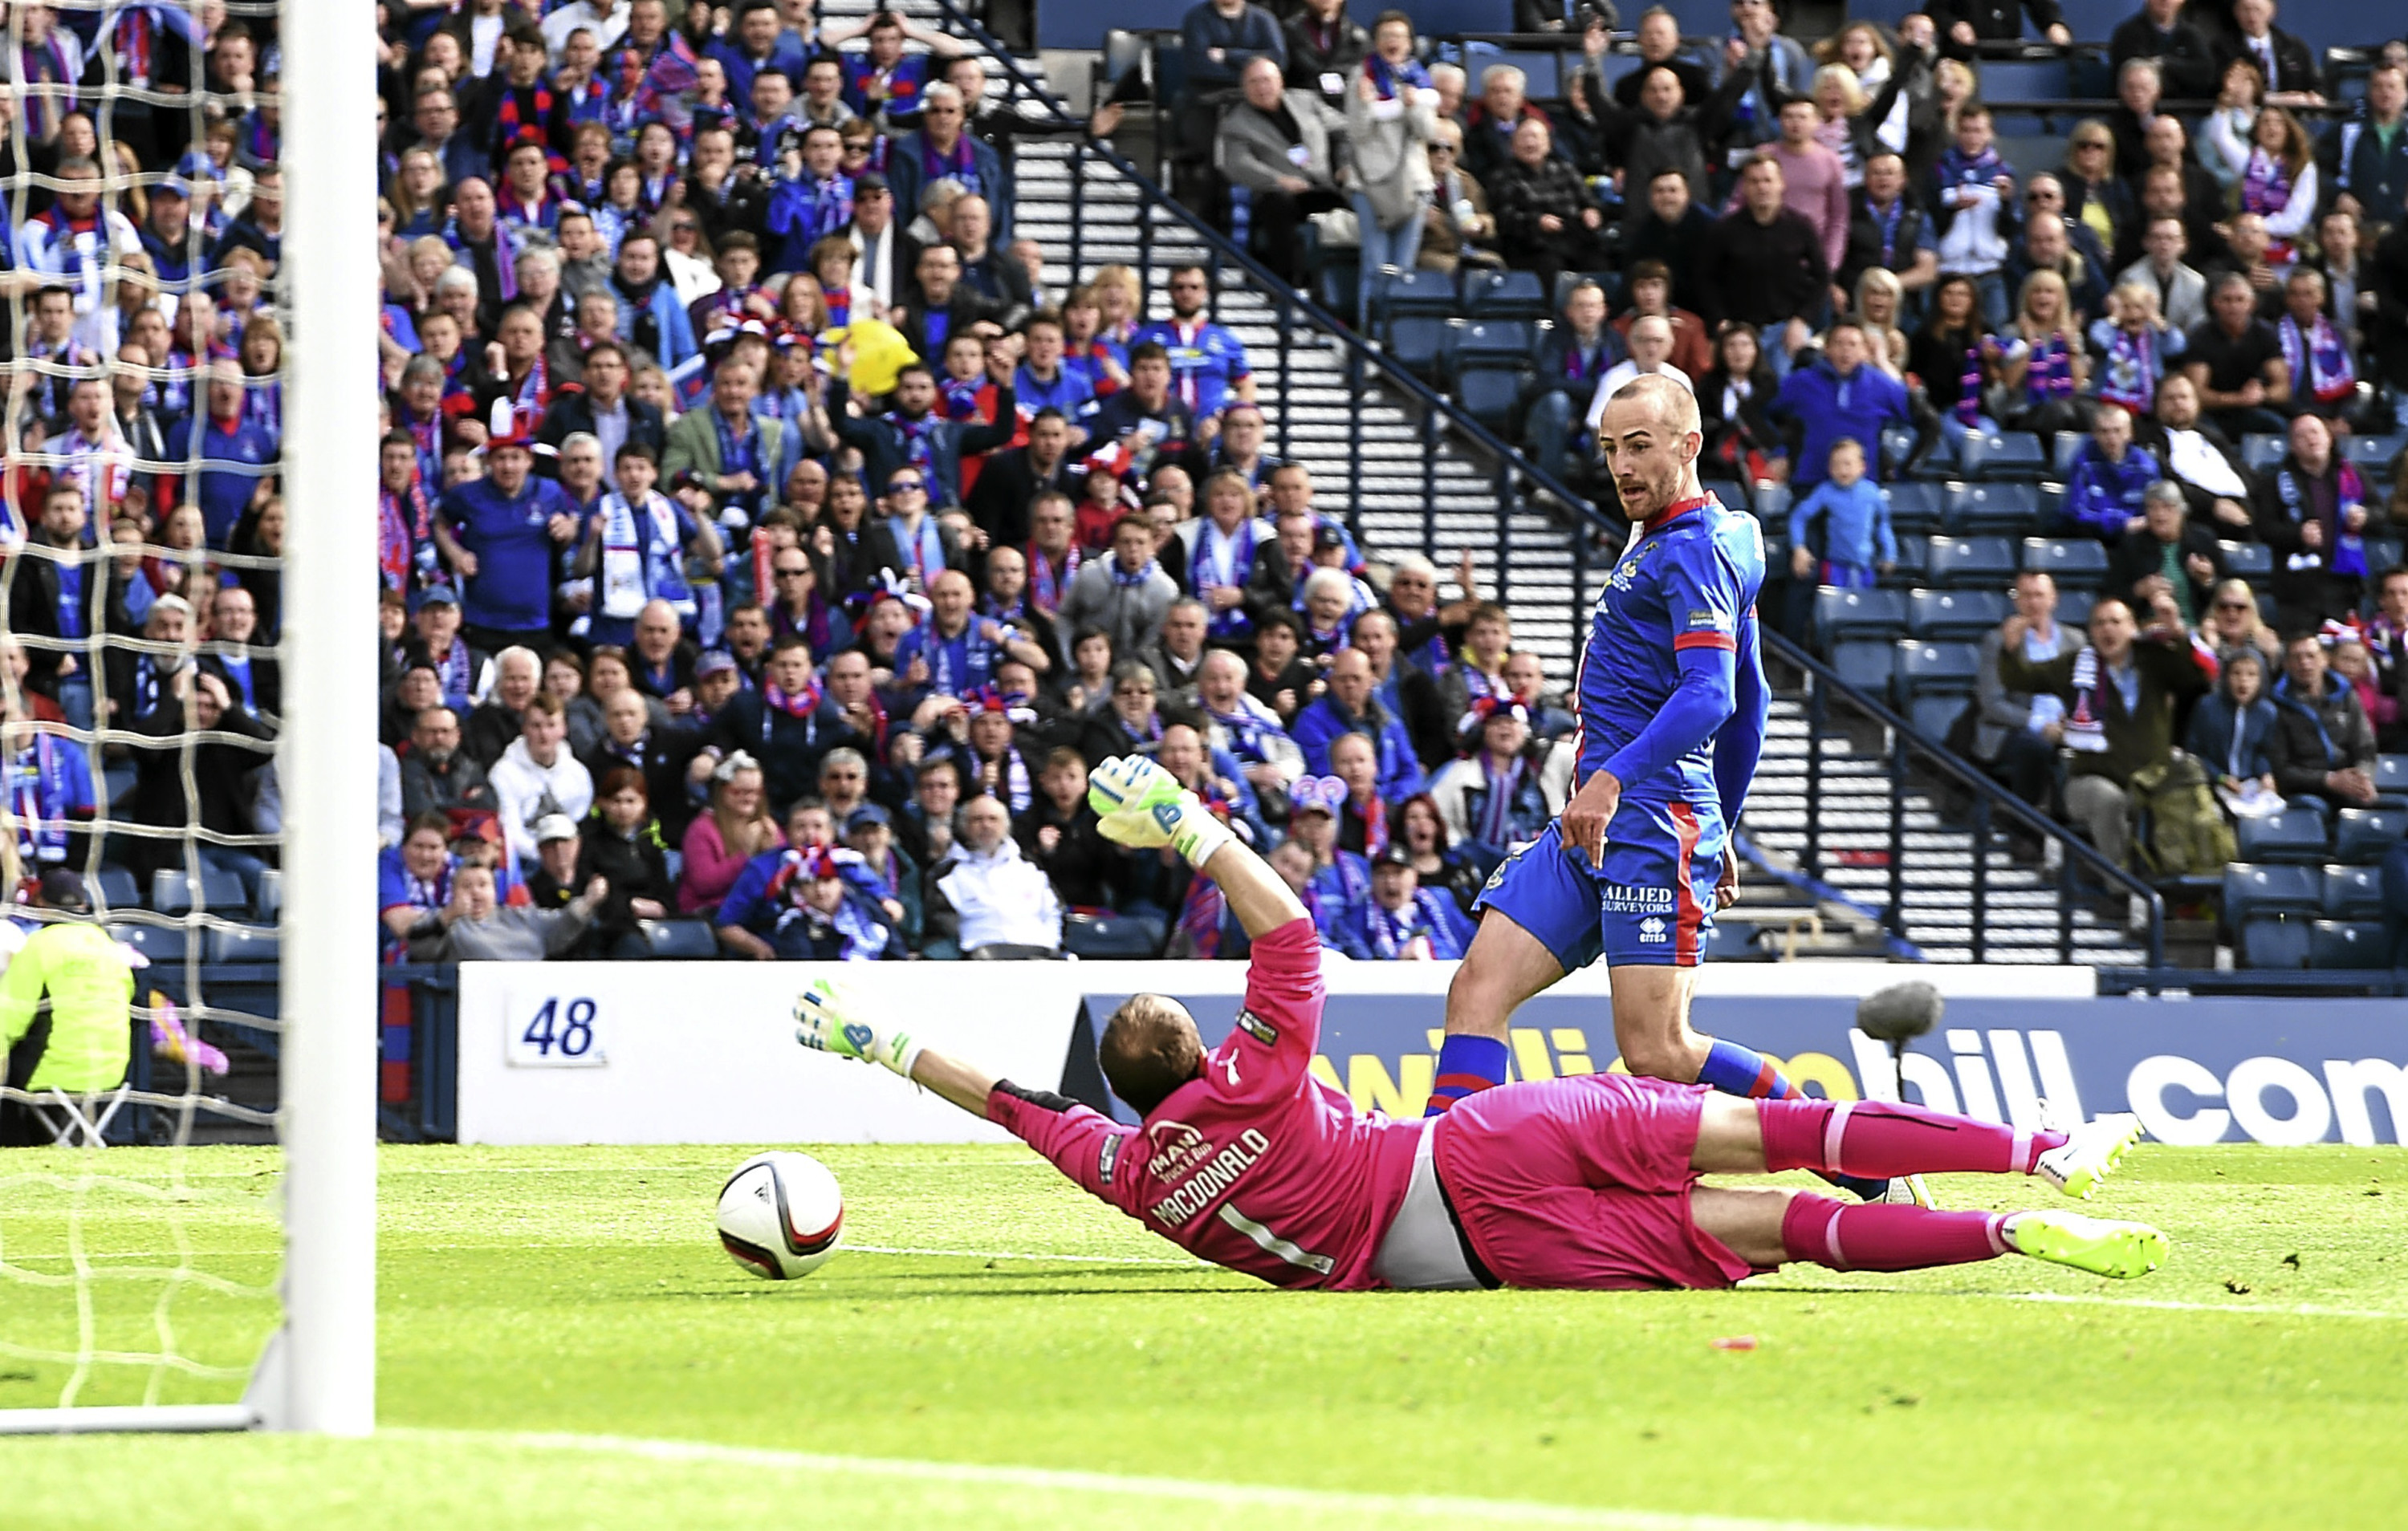 New Dundee signing James Vincent slots in the winner for Inverness Caley Thistle in the 2015 Scottish Cup Final at Hampden.